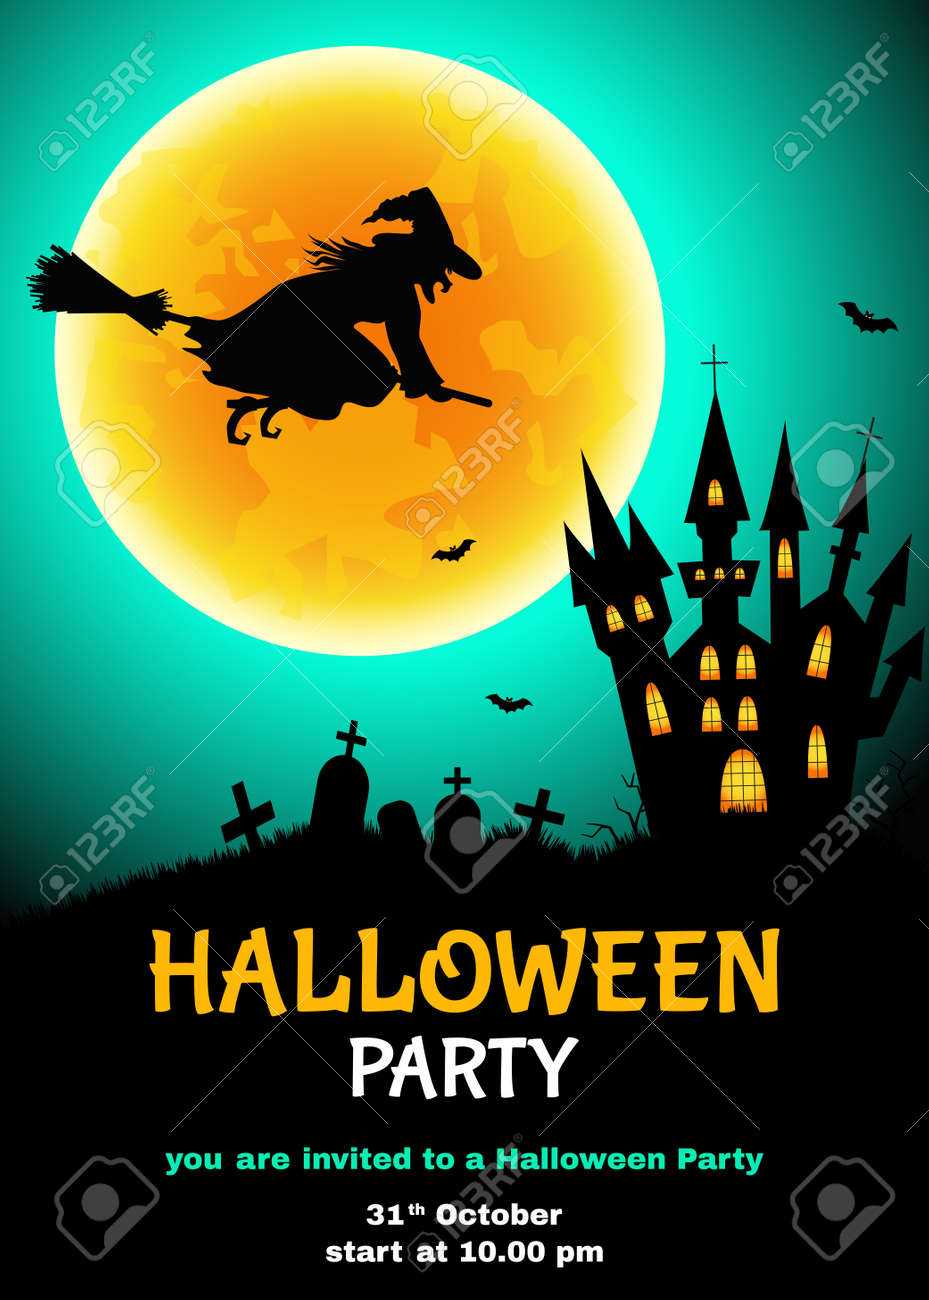 halloween party flyer witch silhouette cemetery castle royalty